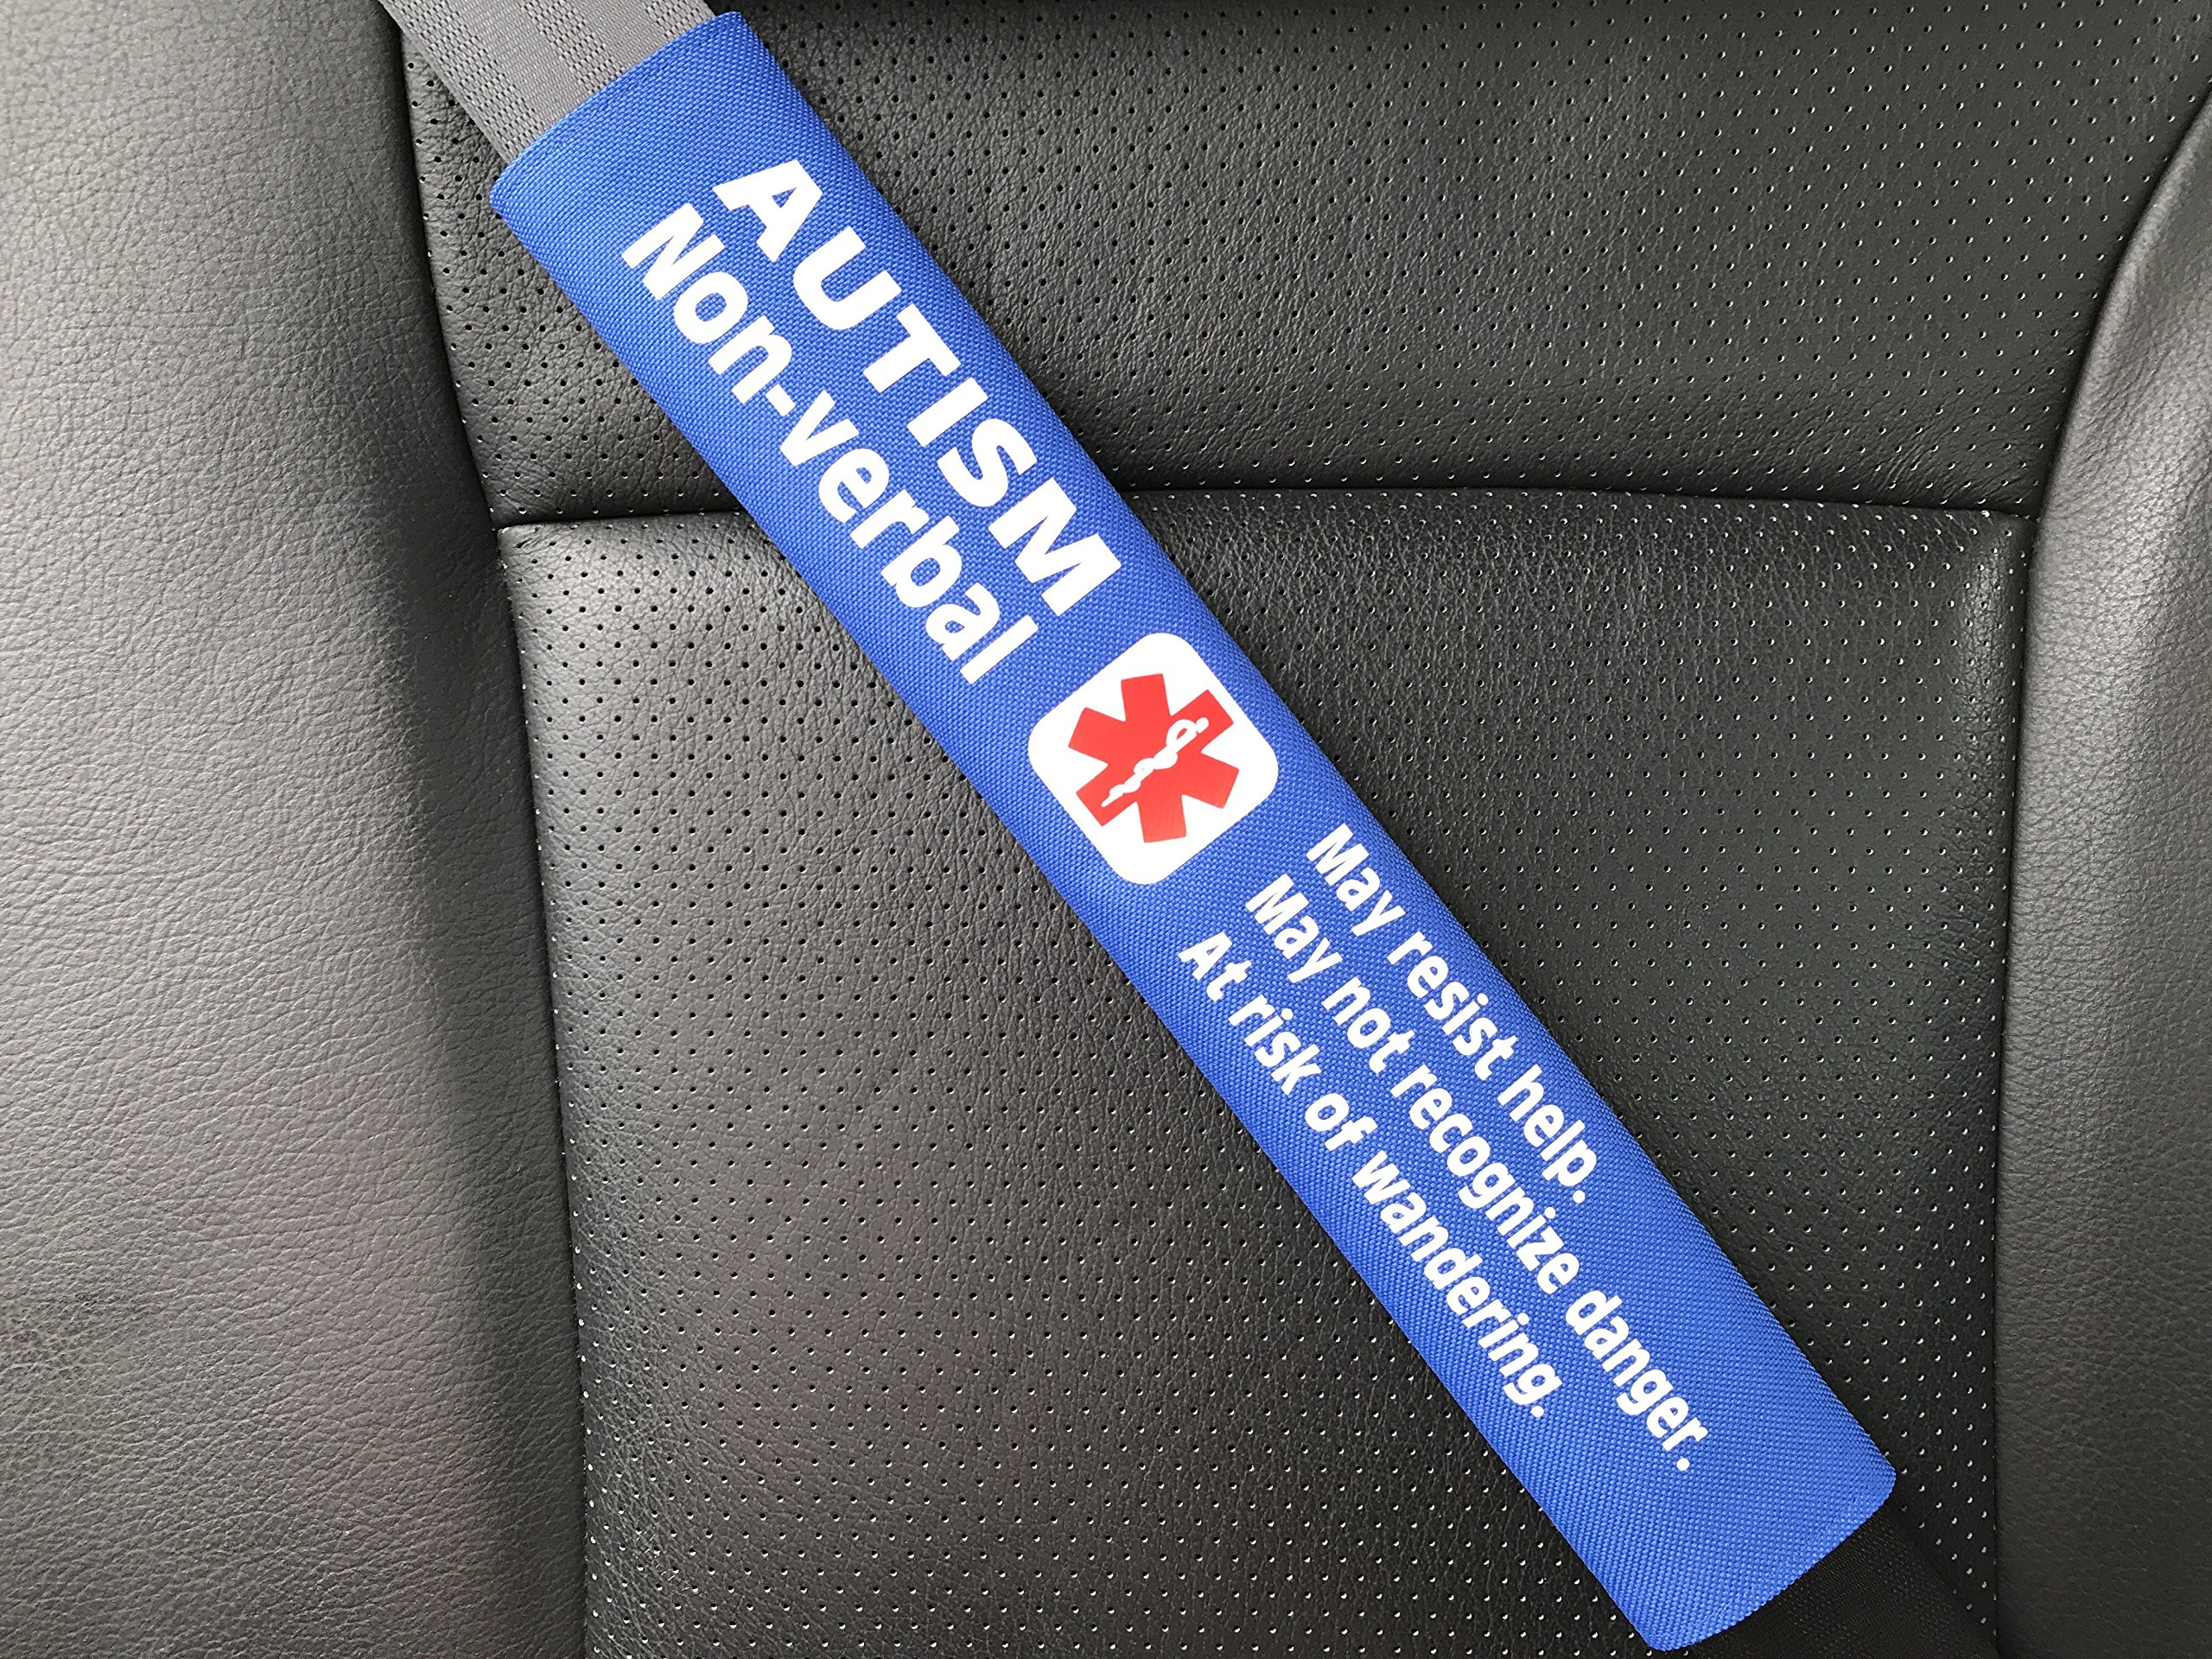 Autism Non-Verbal Medical Alert Seat Belt Cover (Royal Blue)